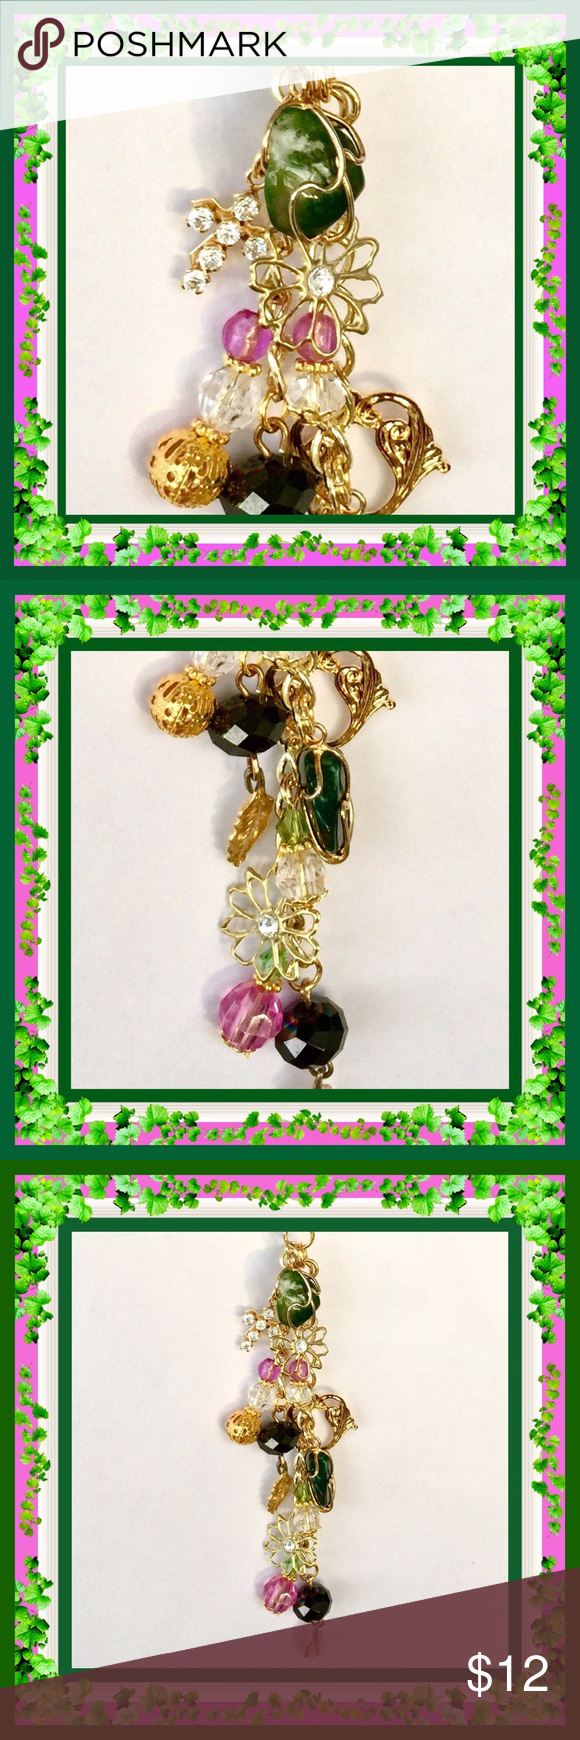 🌺🌴🌺 HANDMADE KEY CHAIN 🌺🌴🌺 🌺🌴🌺 This handmade gold key chain can be used in many ways other than for keys.  Makes a great accessory on a handbag, a back pack pull, a fan pull, even a decoration when not in use.  There are gold charms, lavender, crystal and green beads, plus a gold cross charm with pink rhinestones.  One of a kind. 🌺🌴🌺 Jewelry